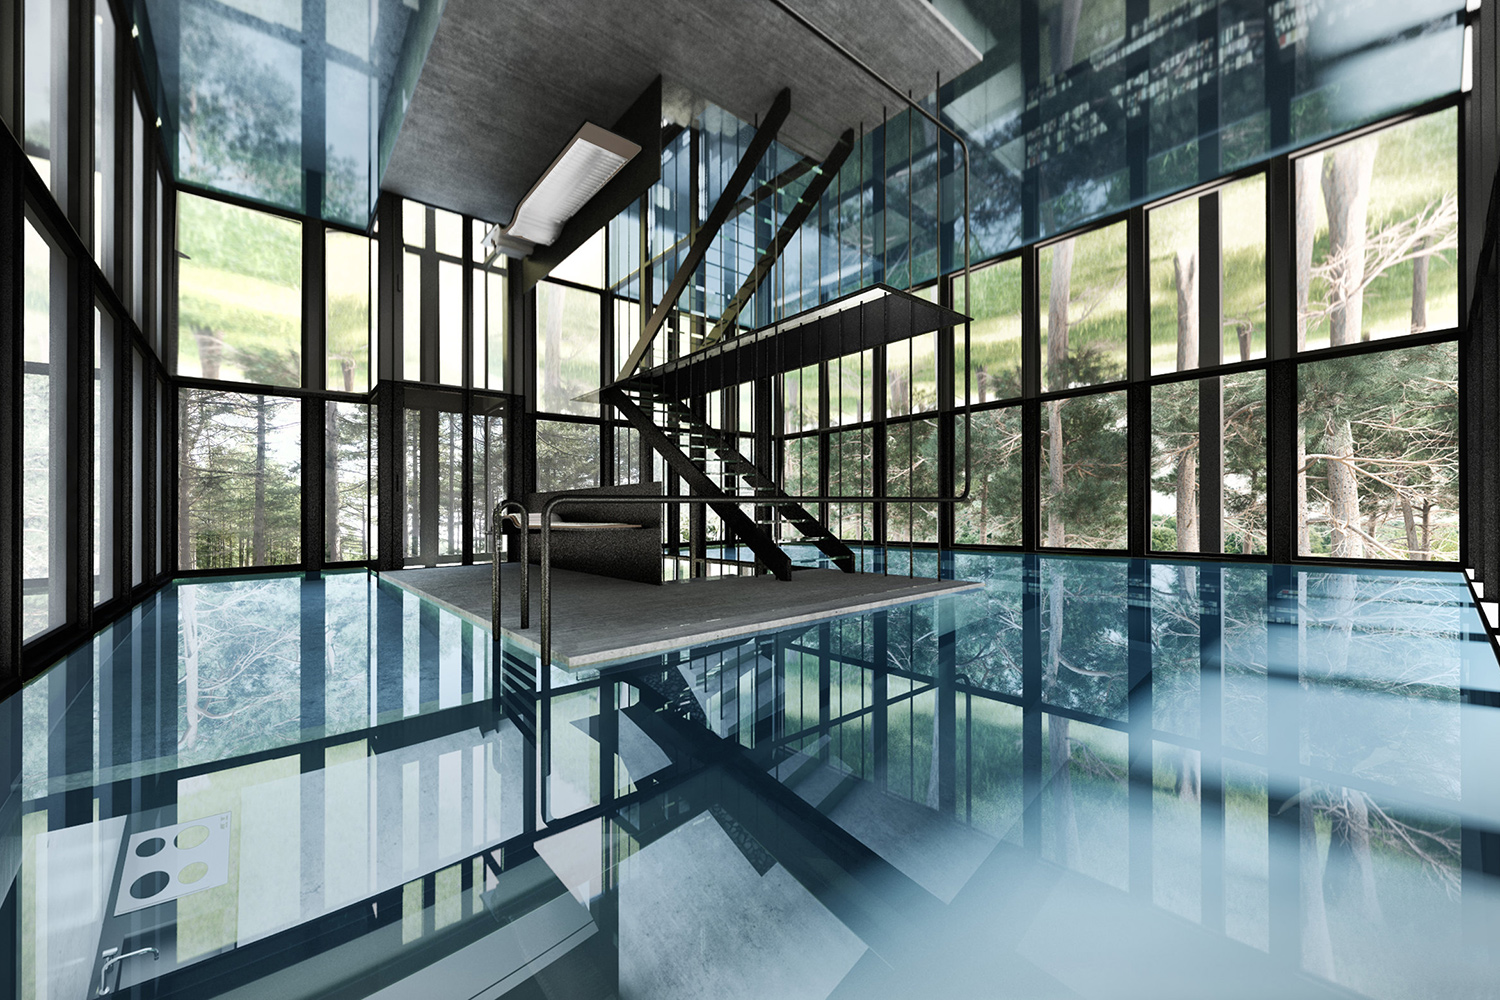 villa-clessidra-indoor-pool-second-floor-10